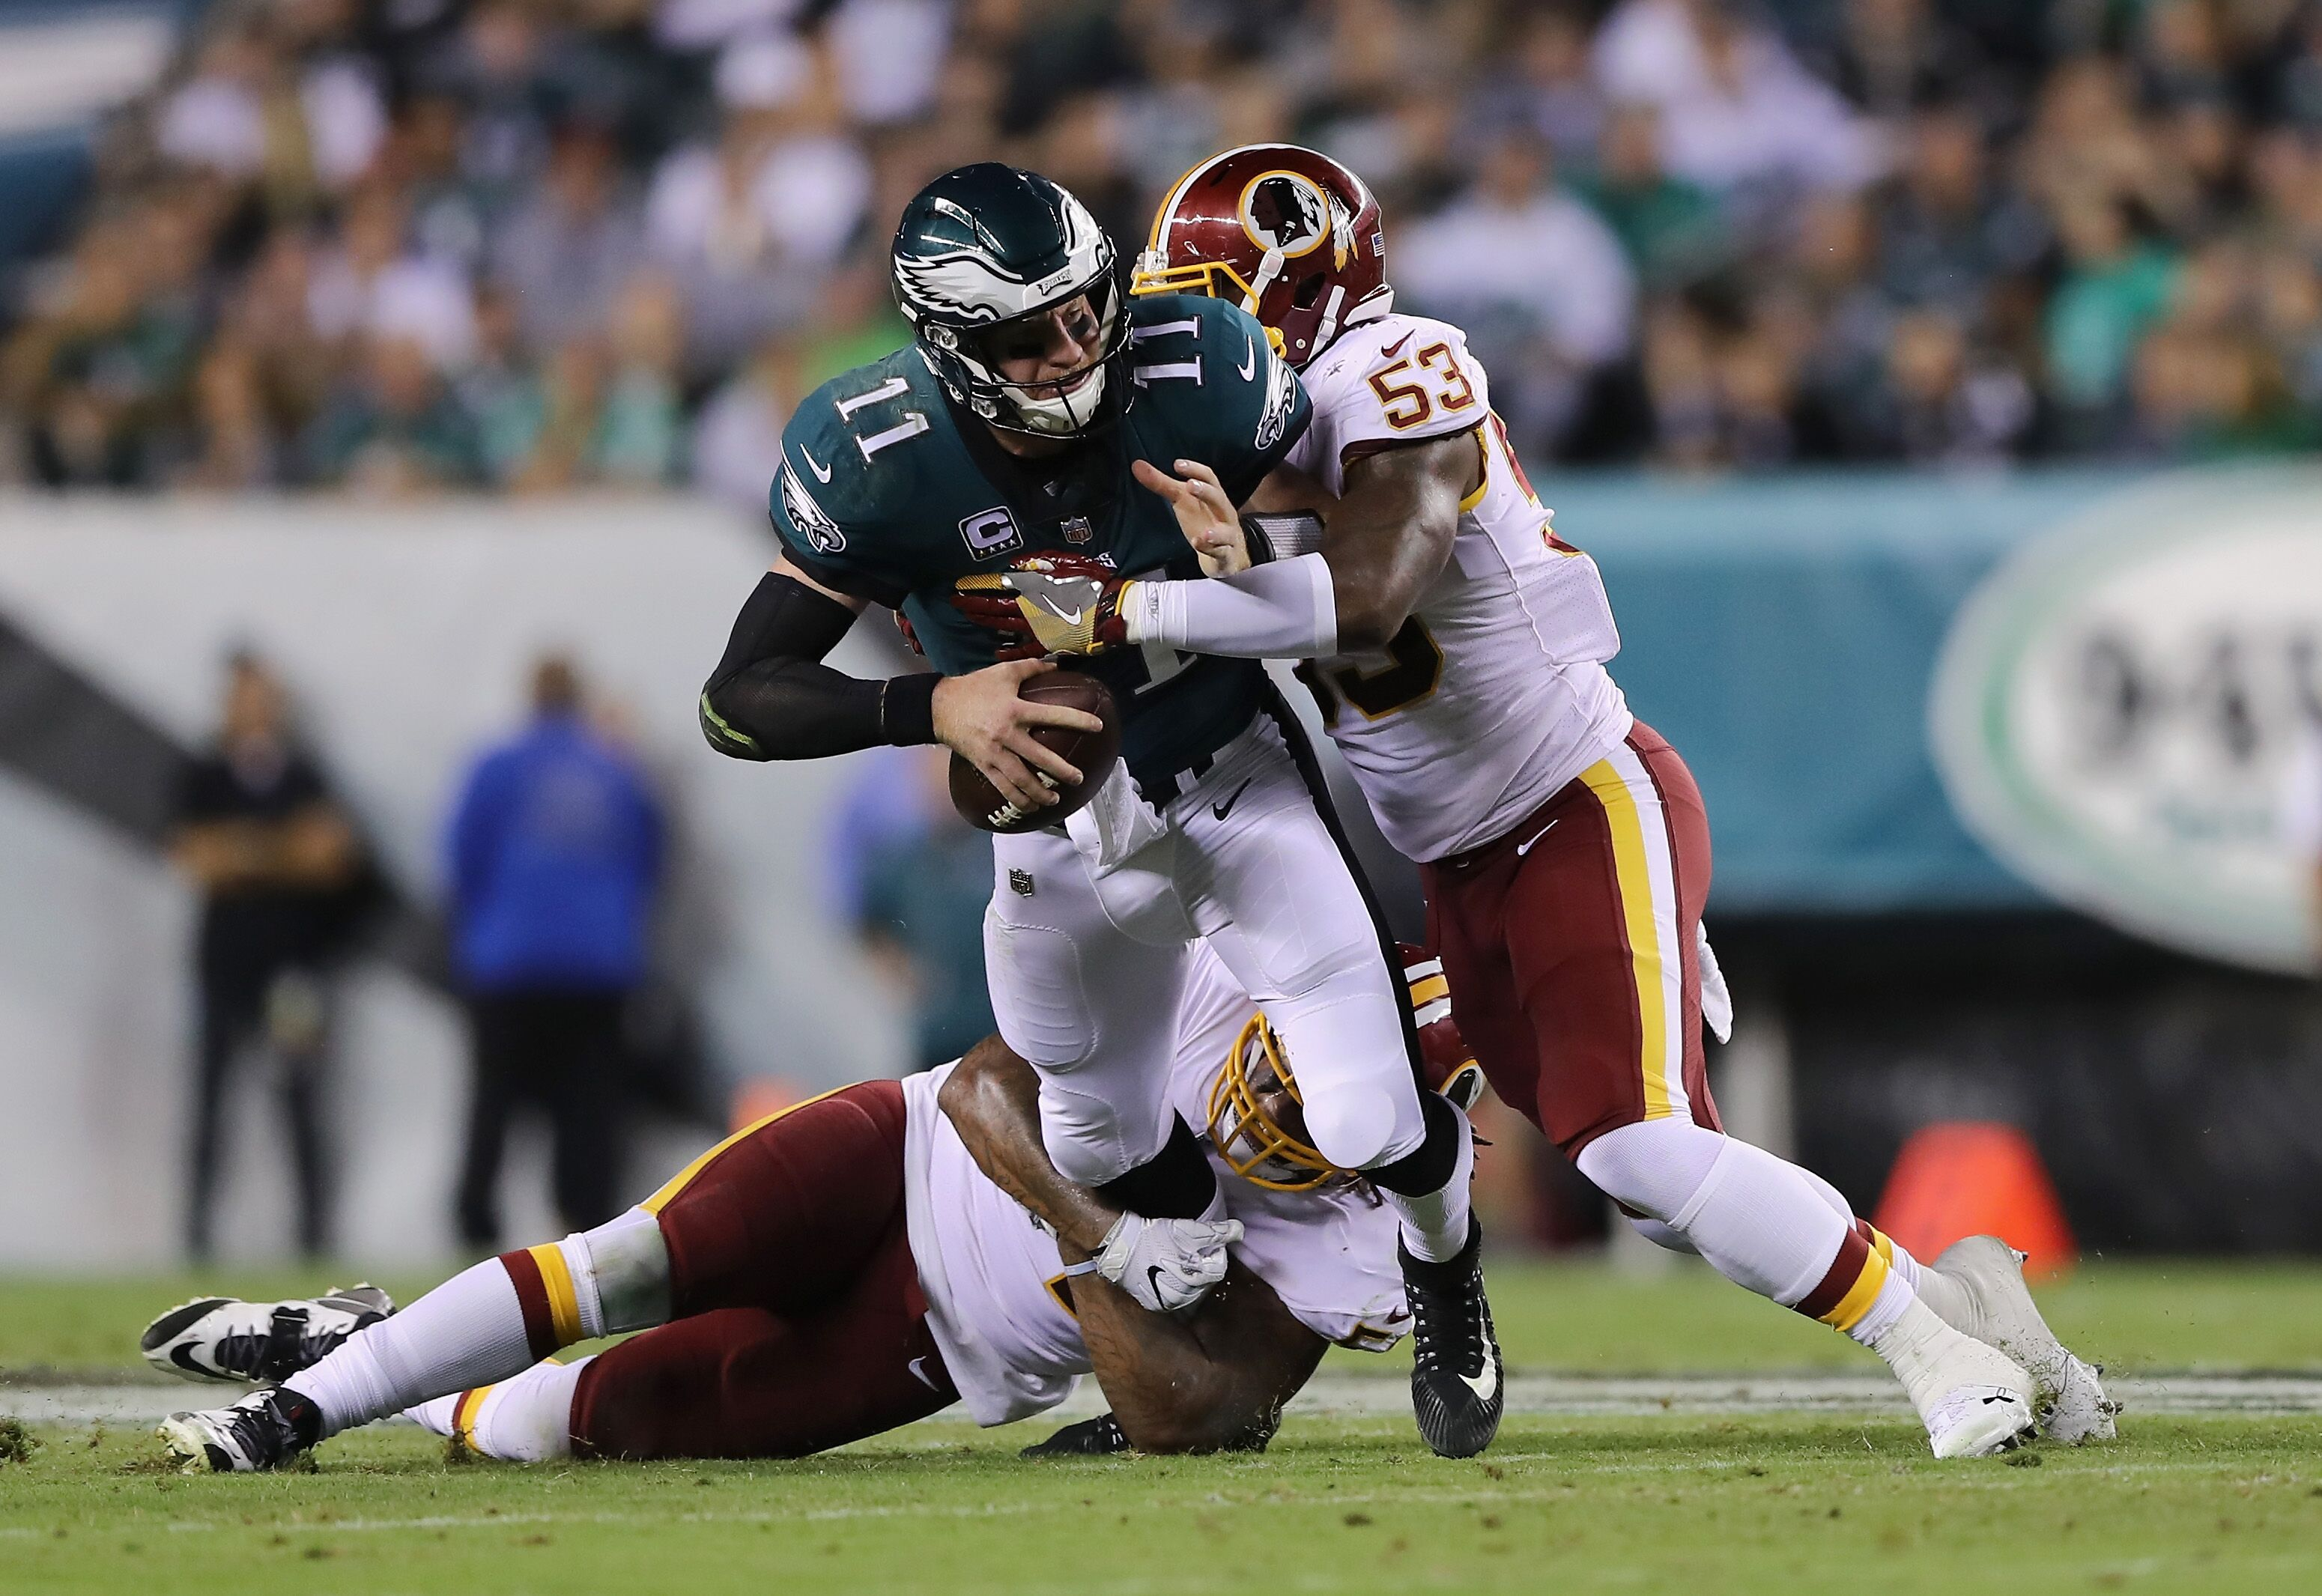 865582644-washington-redskins-v-philadelphia-eagles.jpg